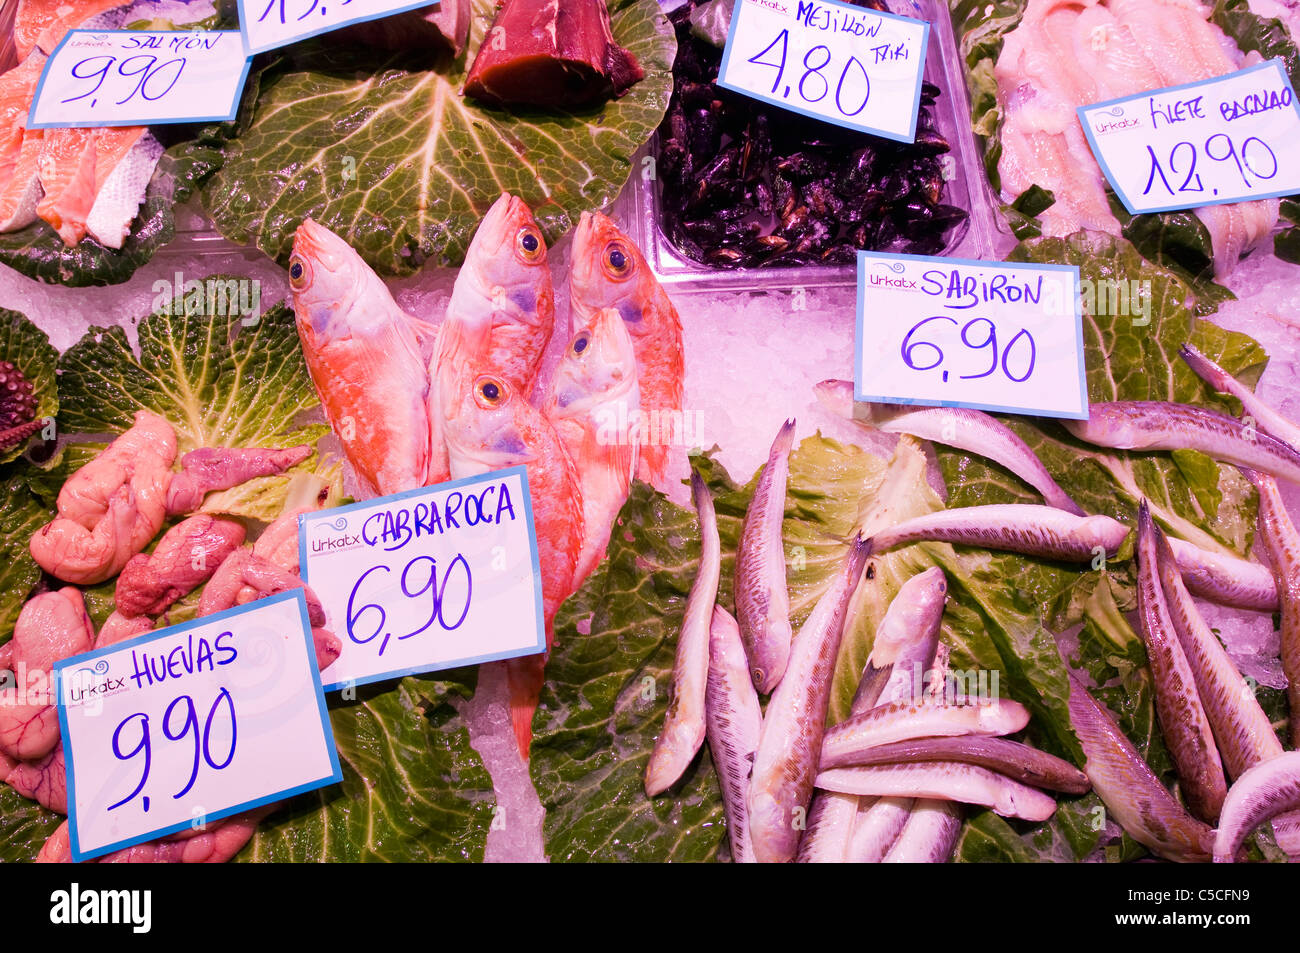 Fresh fish on ice on sales at a fishmonger - Stock Image